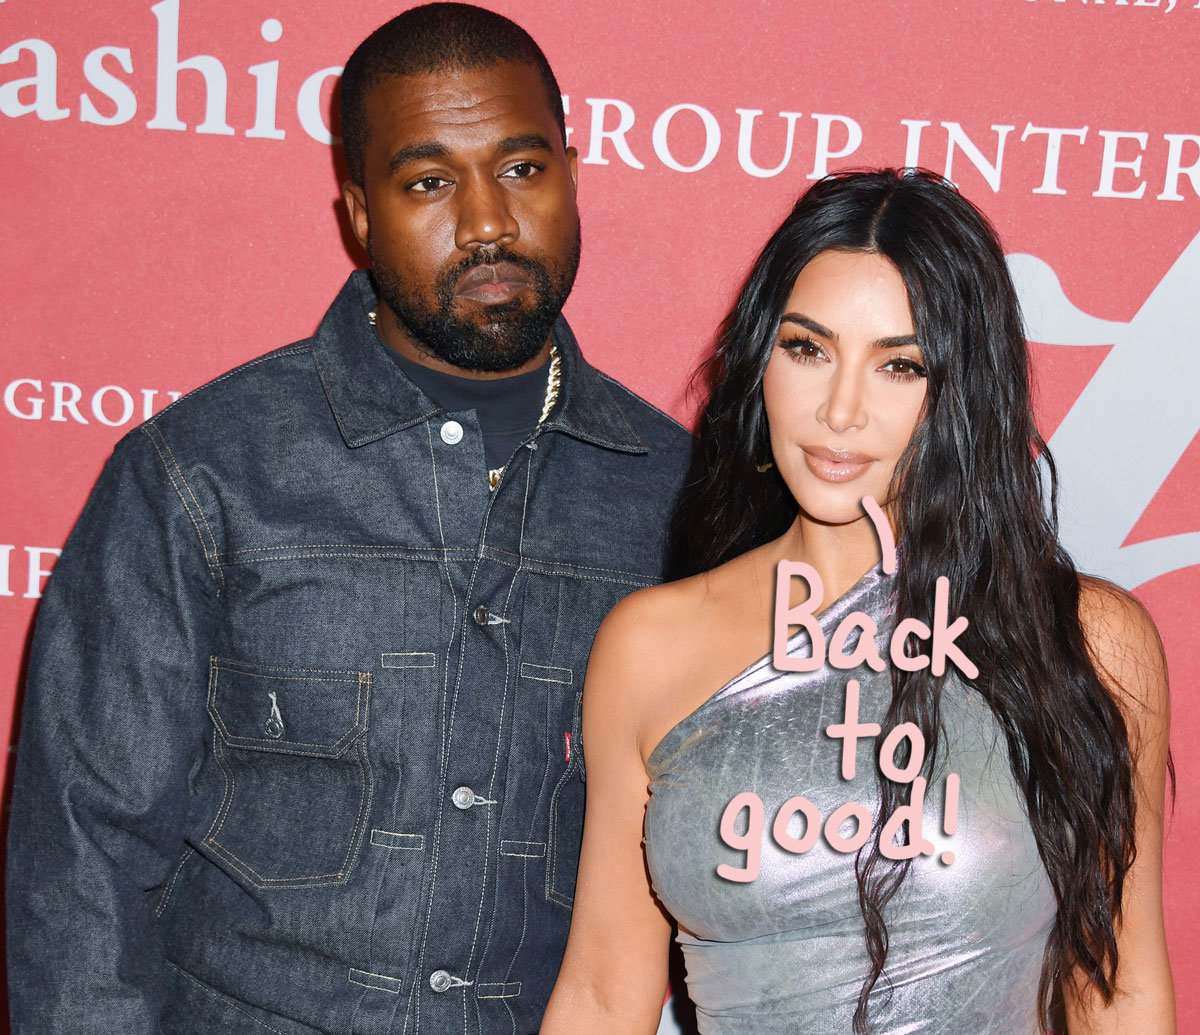 Kim Kardashian Has 'Full Faith' Kanye West Will 'Be The Father And Person He Once Was' After Divorce